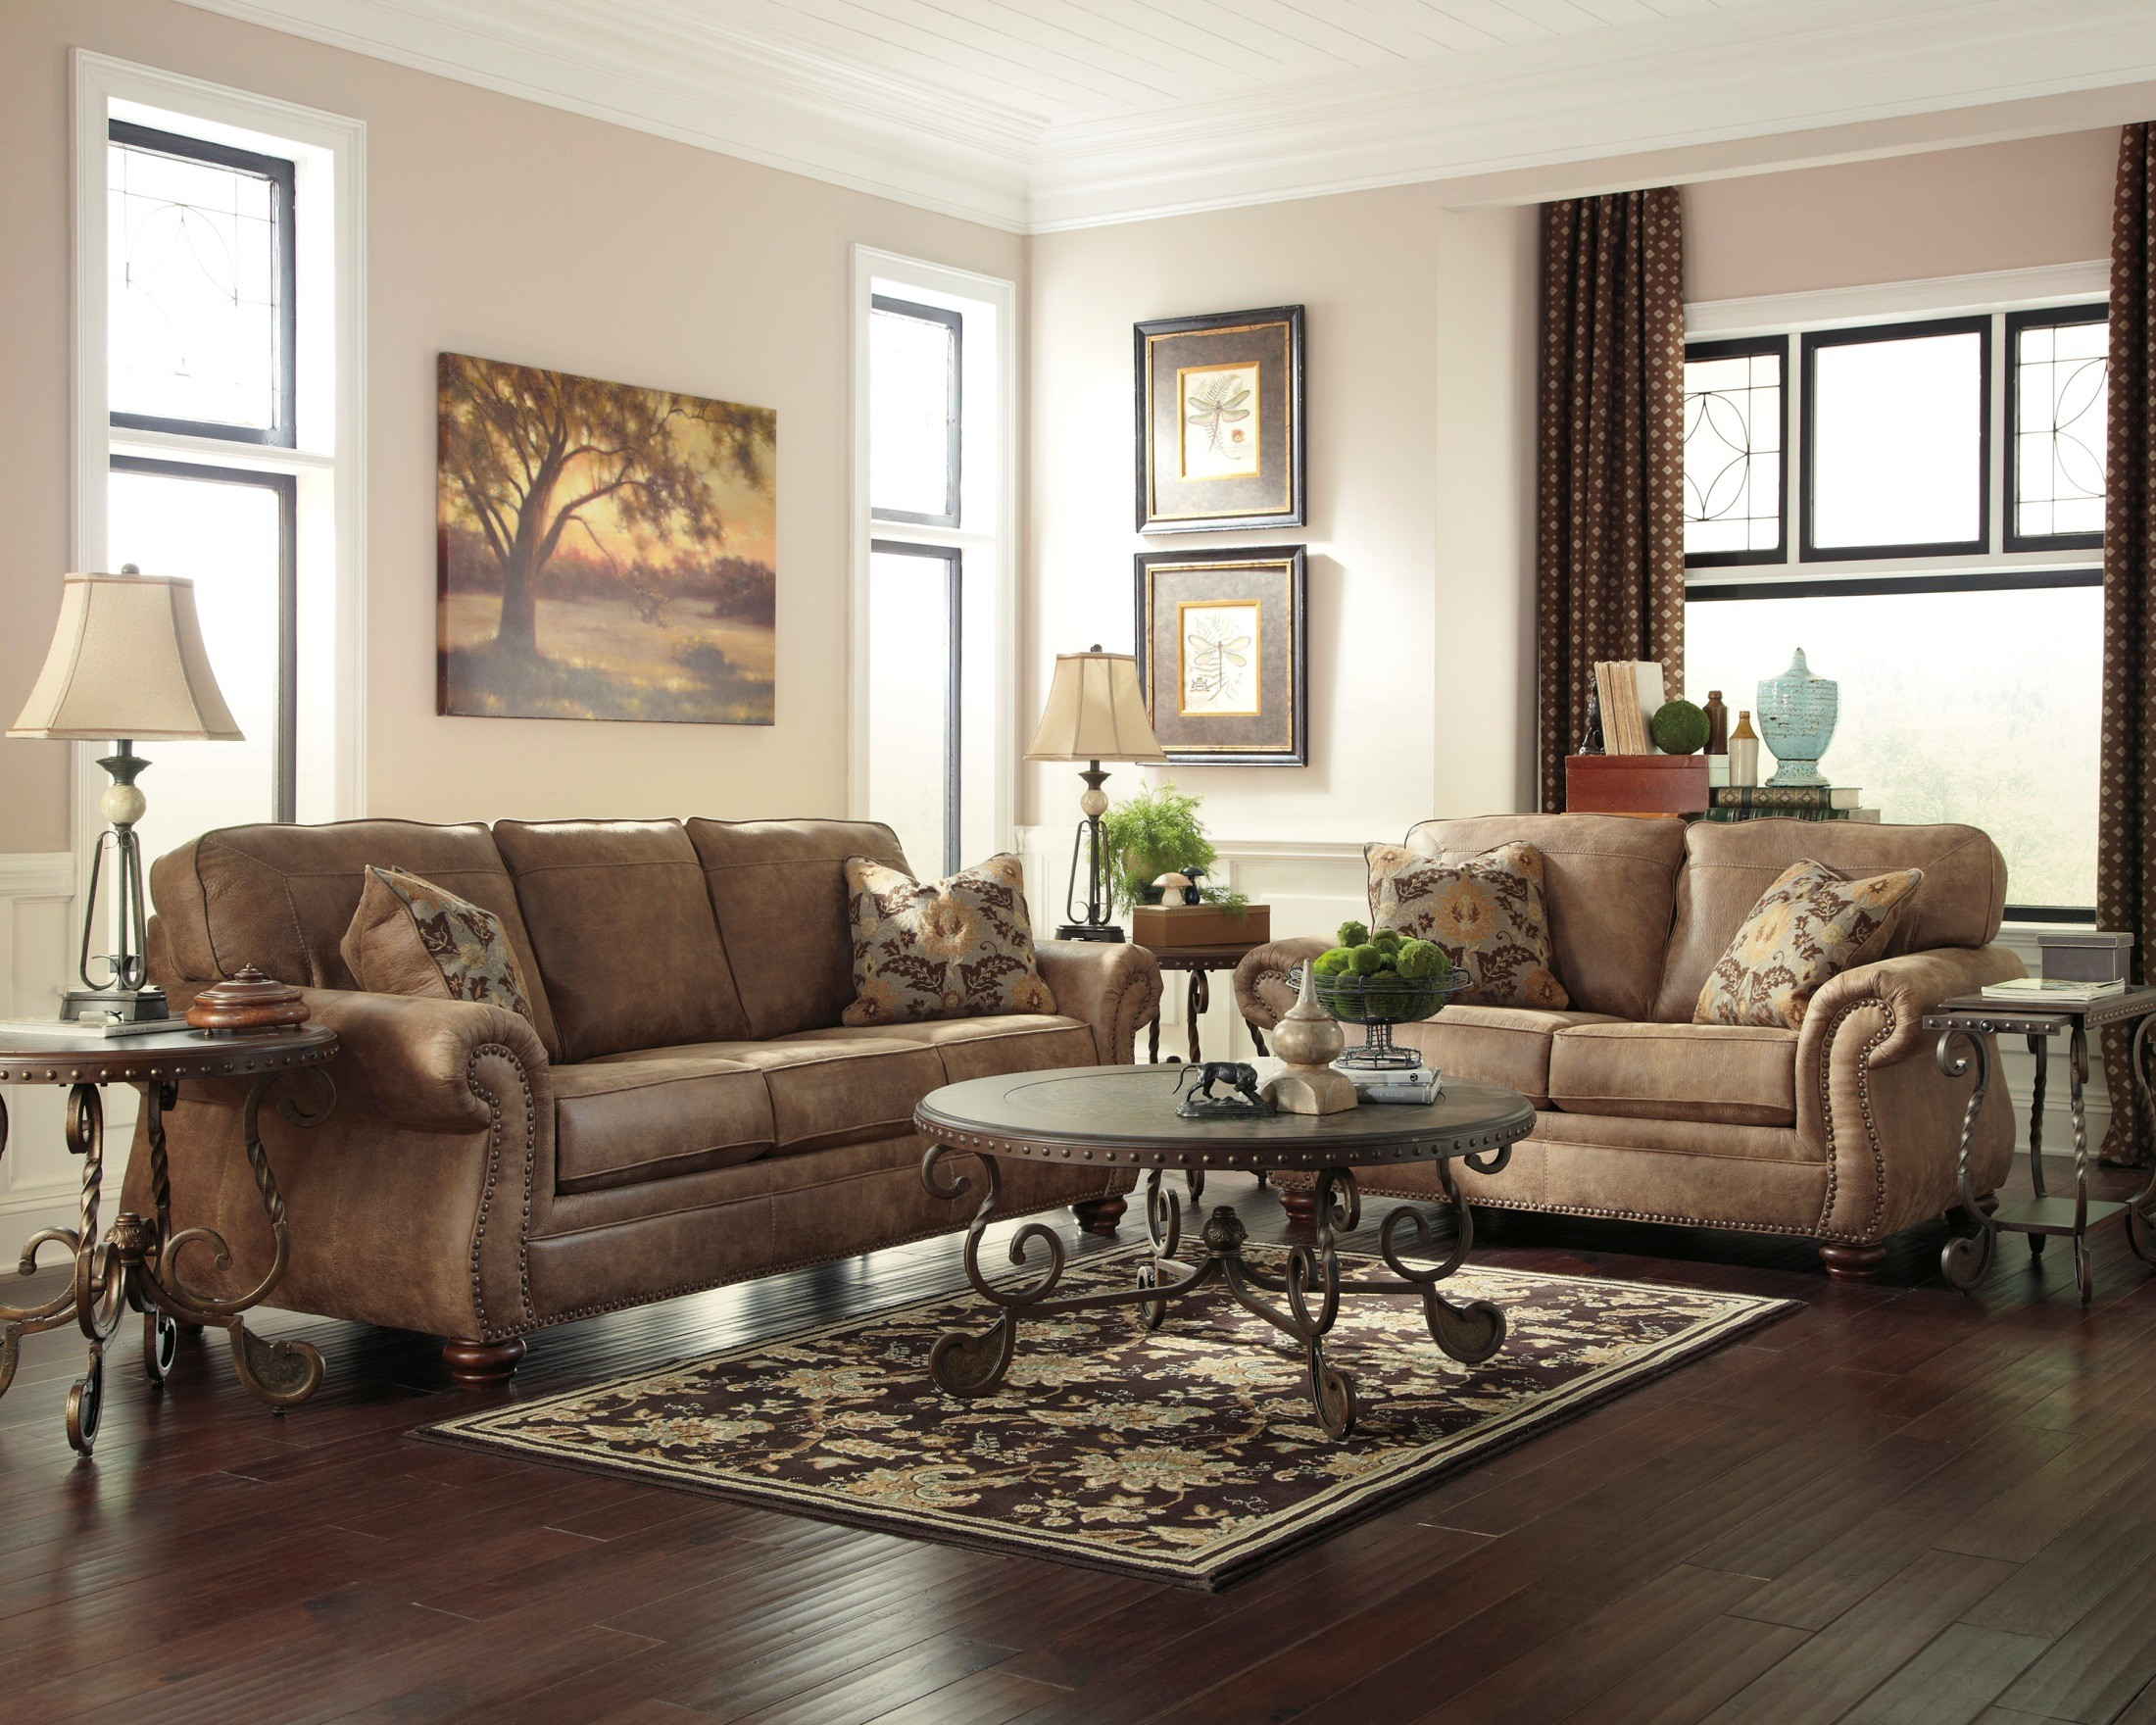 furniture for livingroom larkinhurst earth living room set from ashley 31901 38 35 coleman furniture 3274